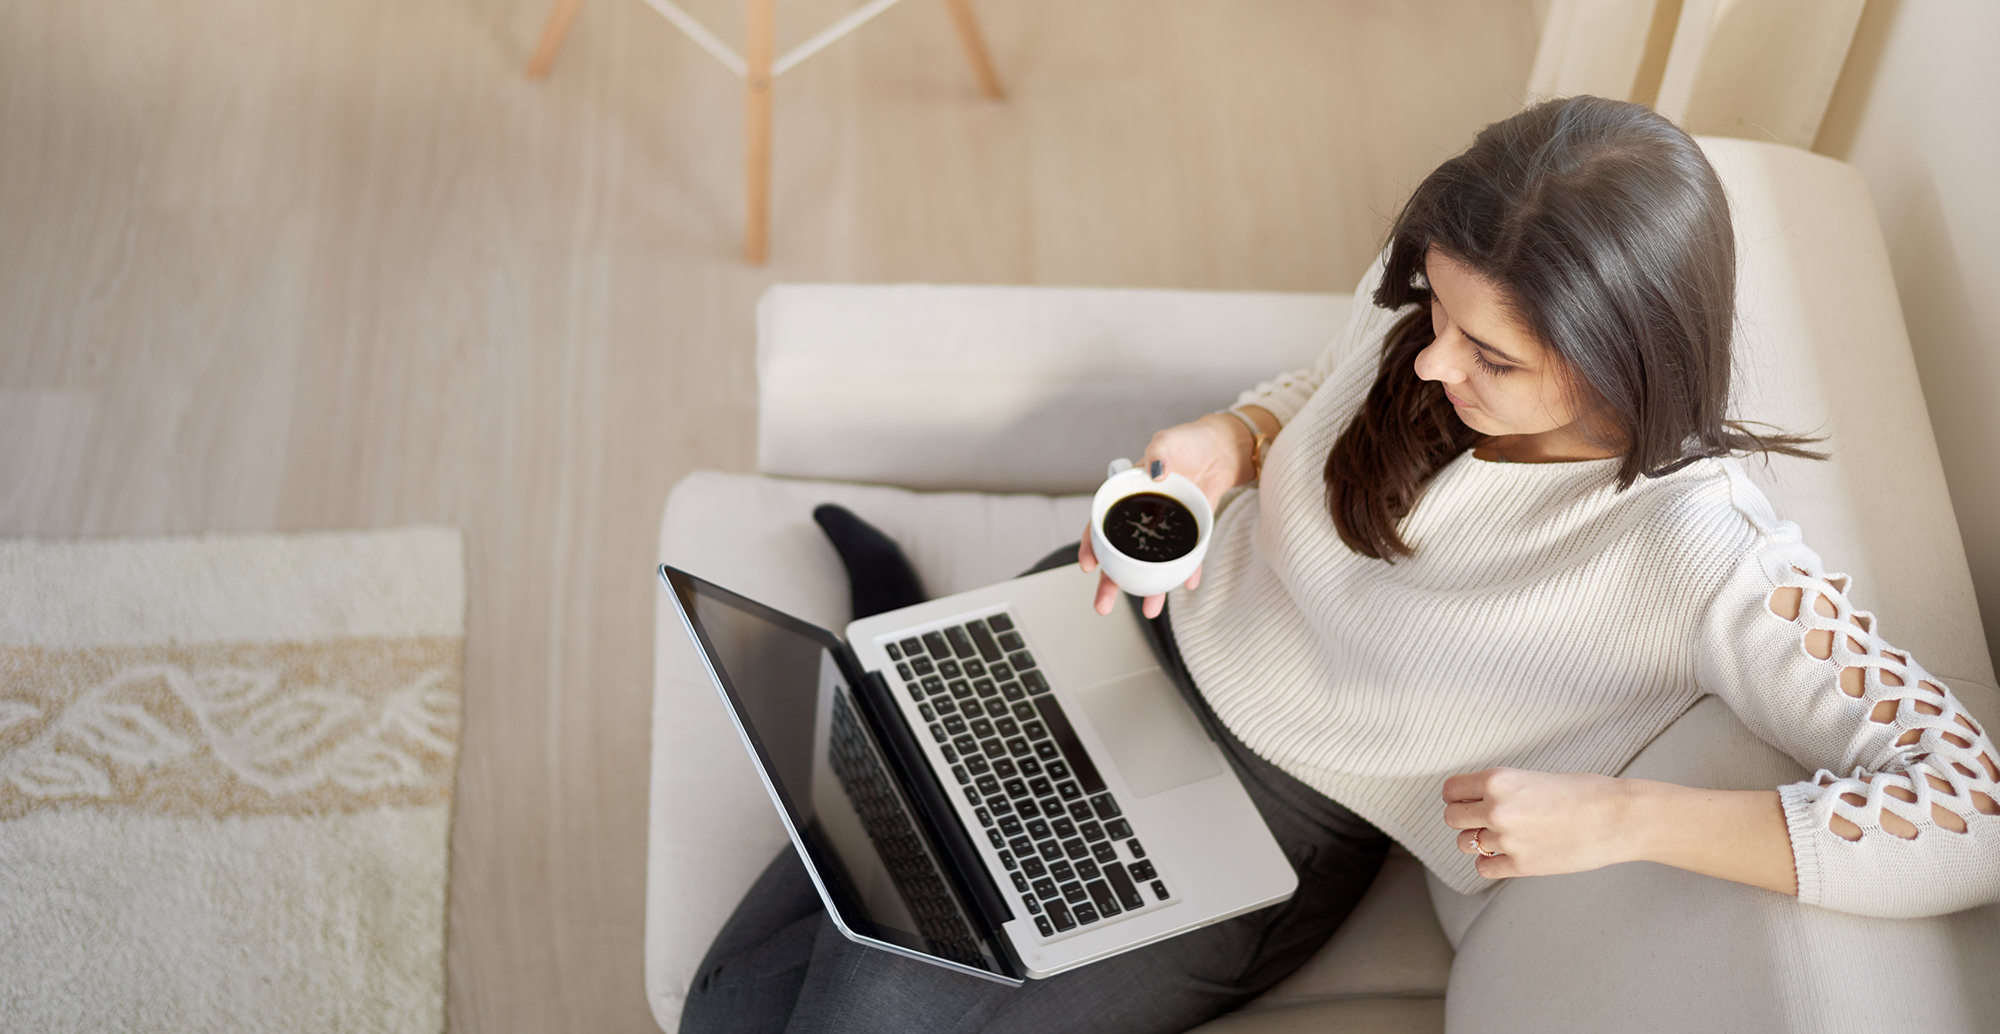 Woman using laptop for work and drinking coffee while sitting on sofa.